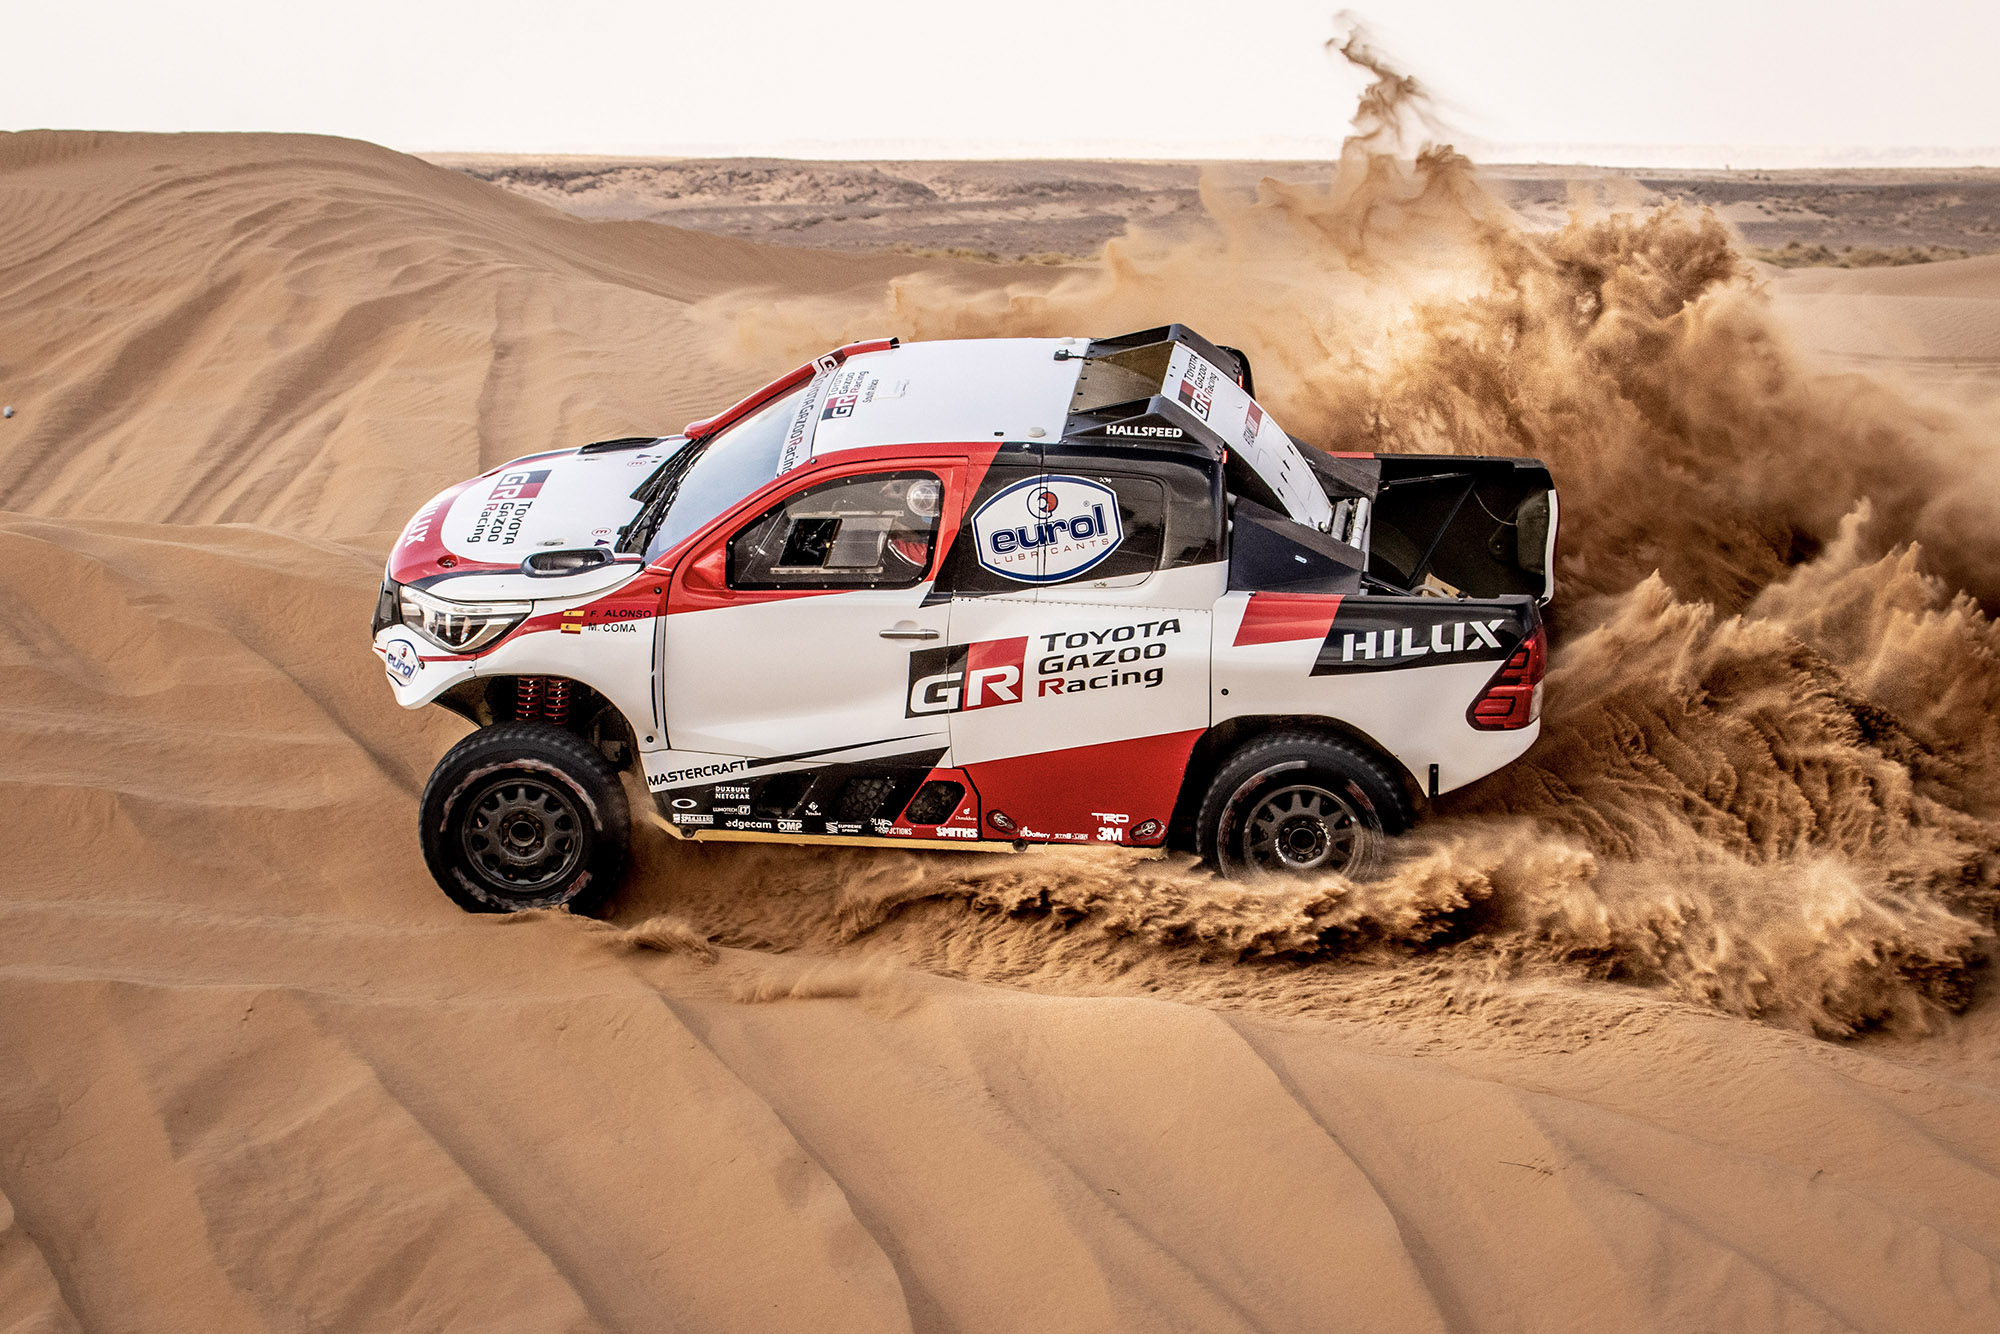 Fernando Alonso in the Toyota Hilux